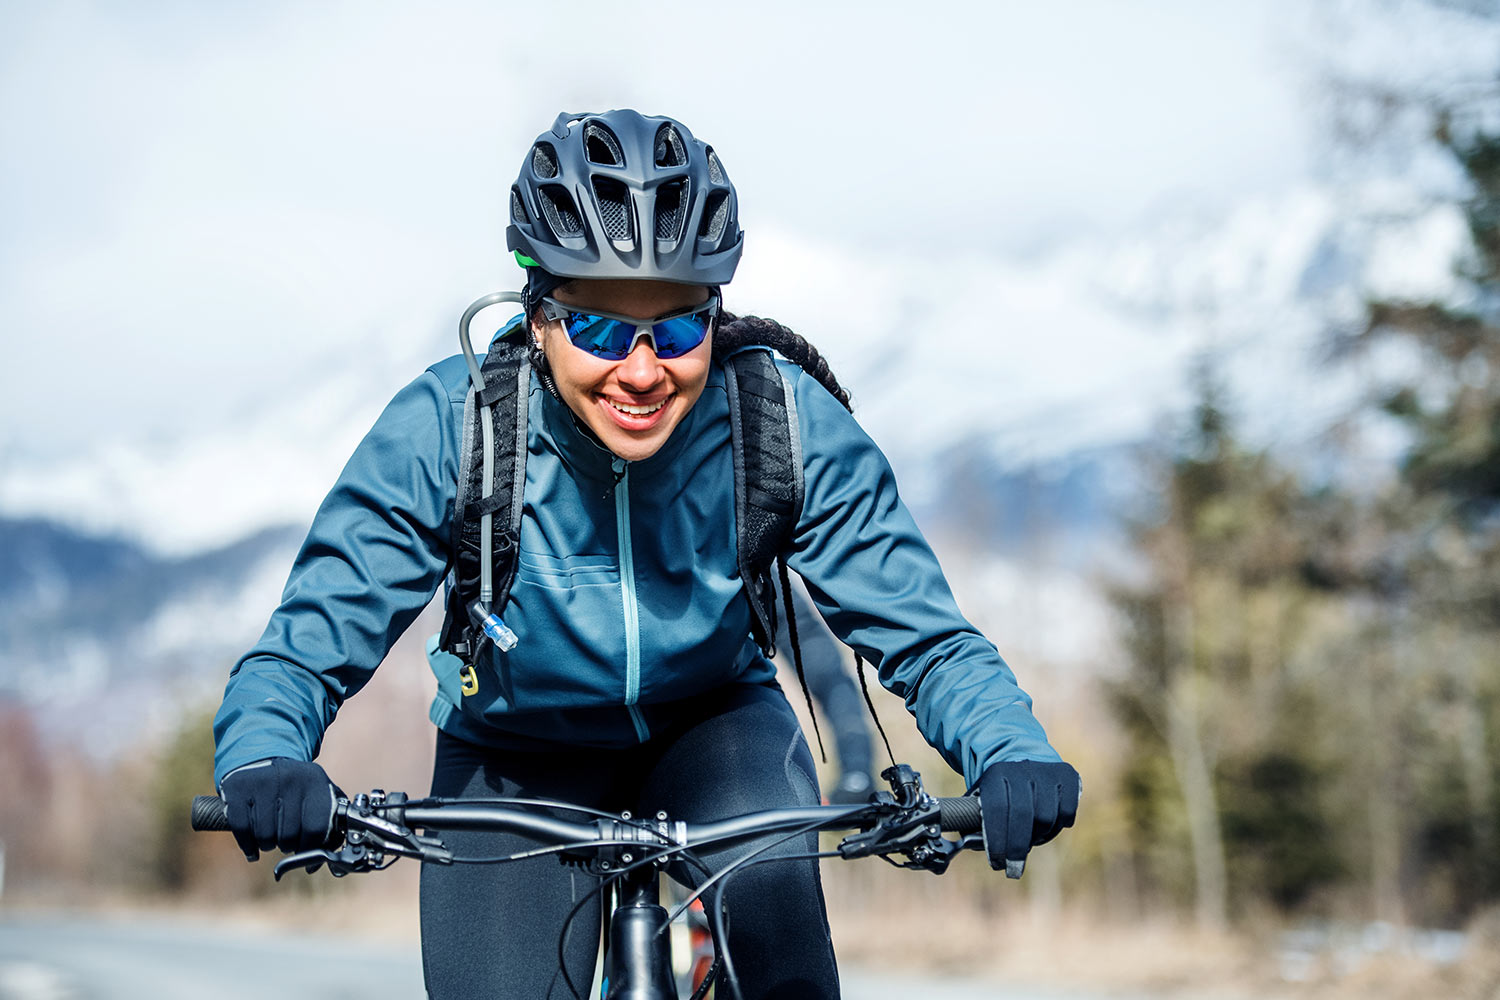 advices for cycling in winter season